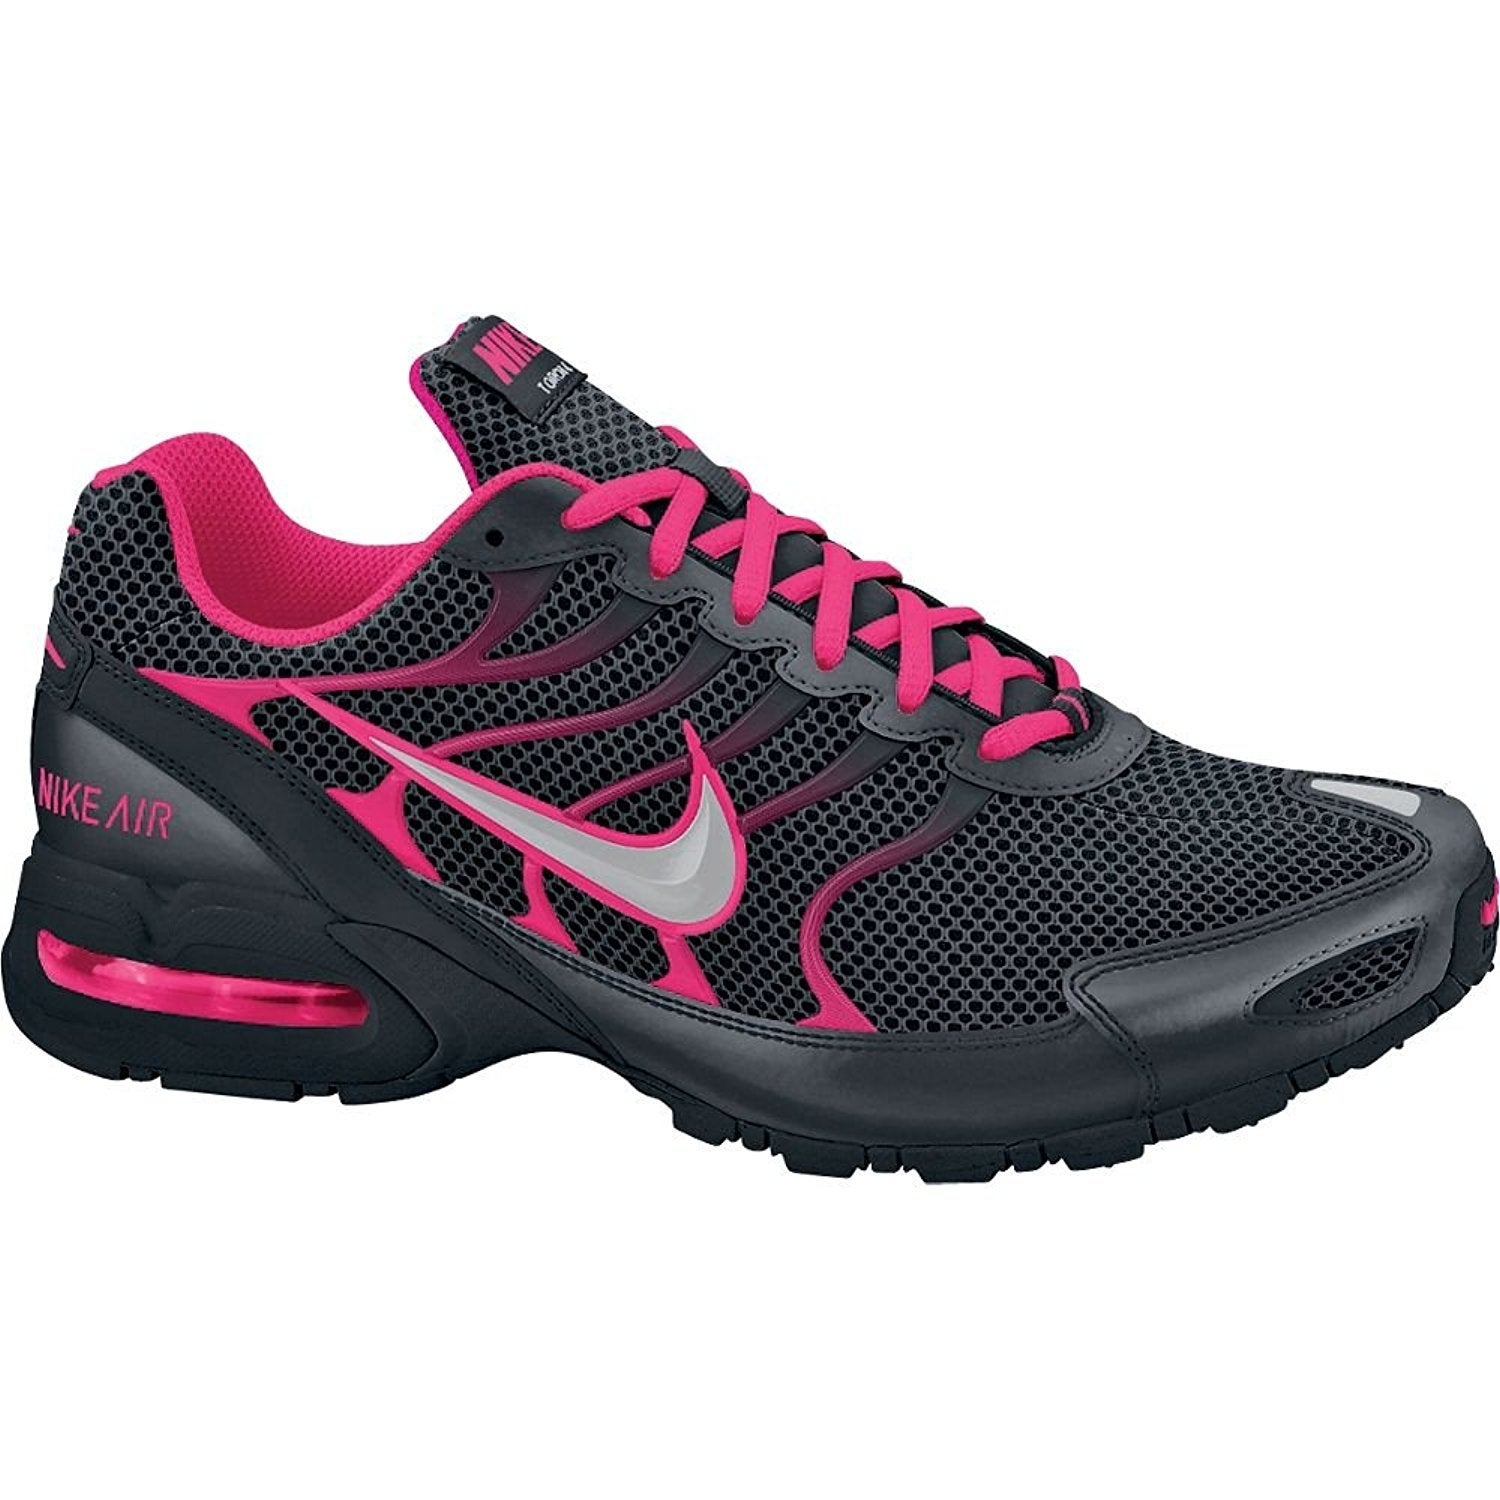 reputable site 5fd3a d6f33 ... Shop Nike Air Max Torch 4 Womens Running Shoes - Free Shipping Today -  Overstock.